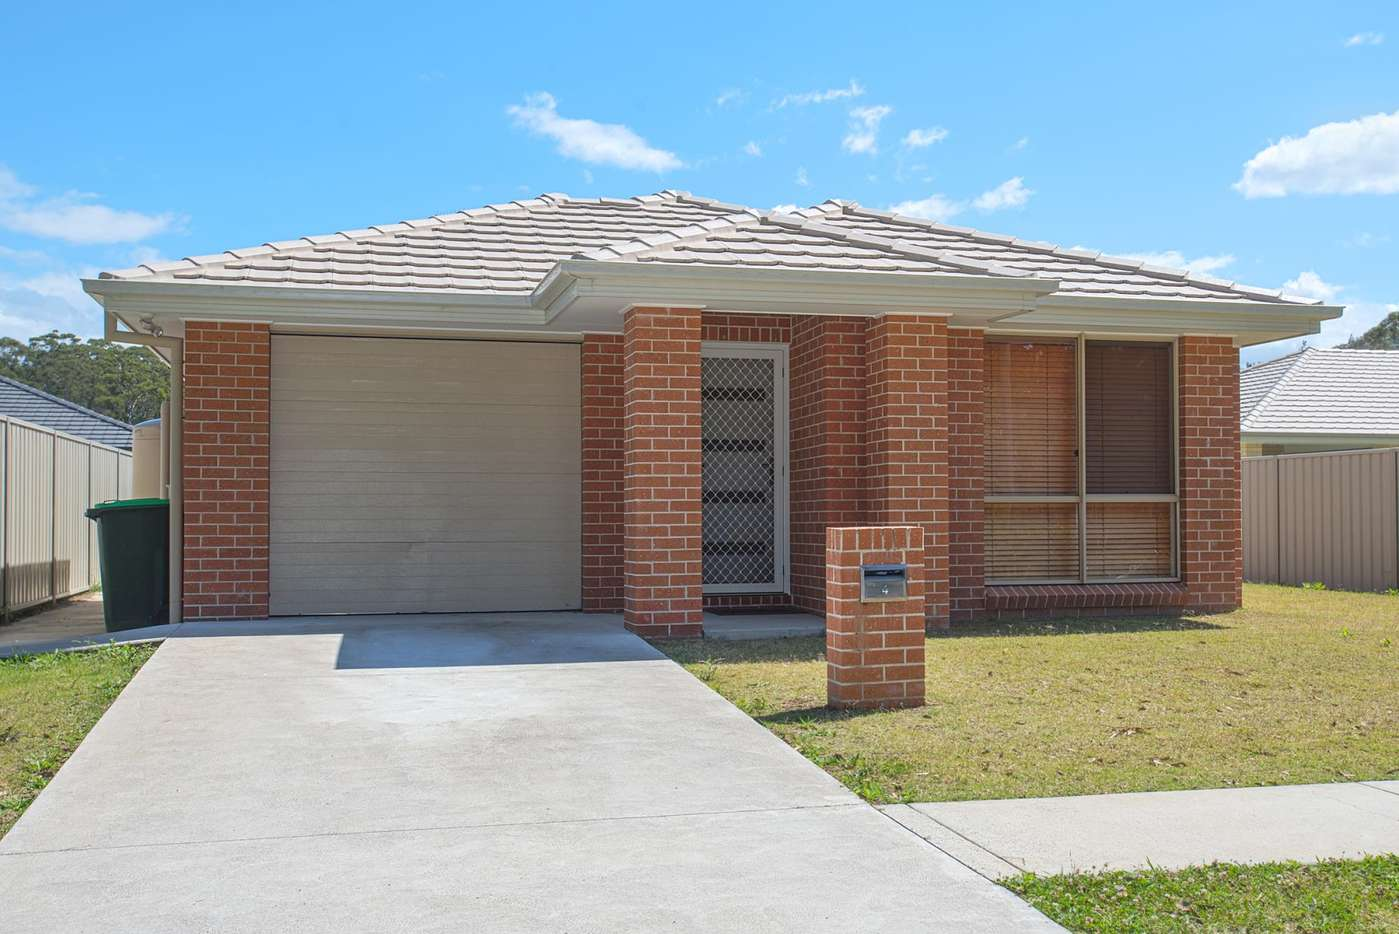 Main view of Homely house listing, 4 Seashells Avenue, Sandy Beach, NSW 2456